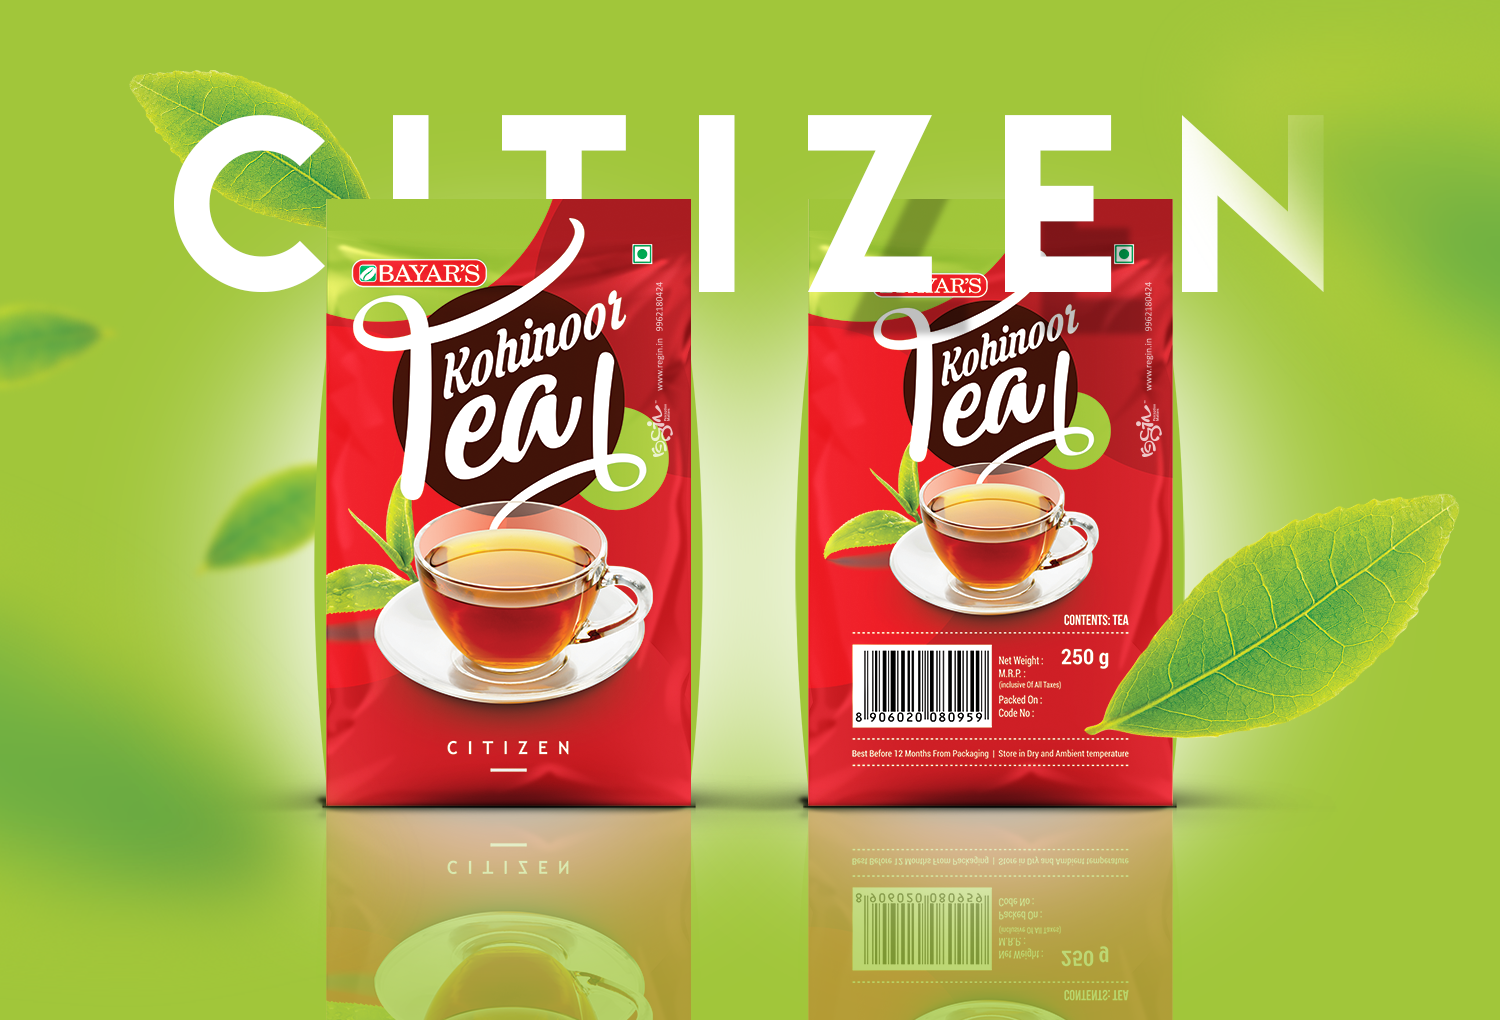 kohinoor tea packaging design regin in